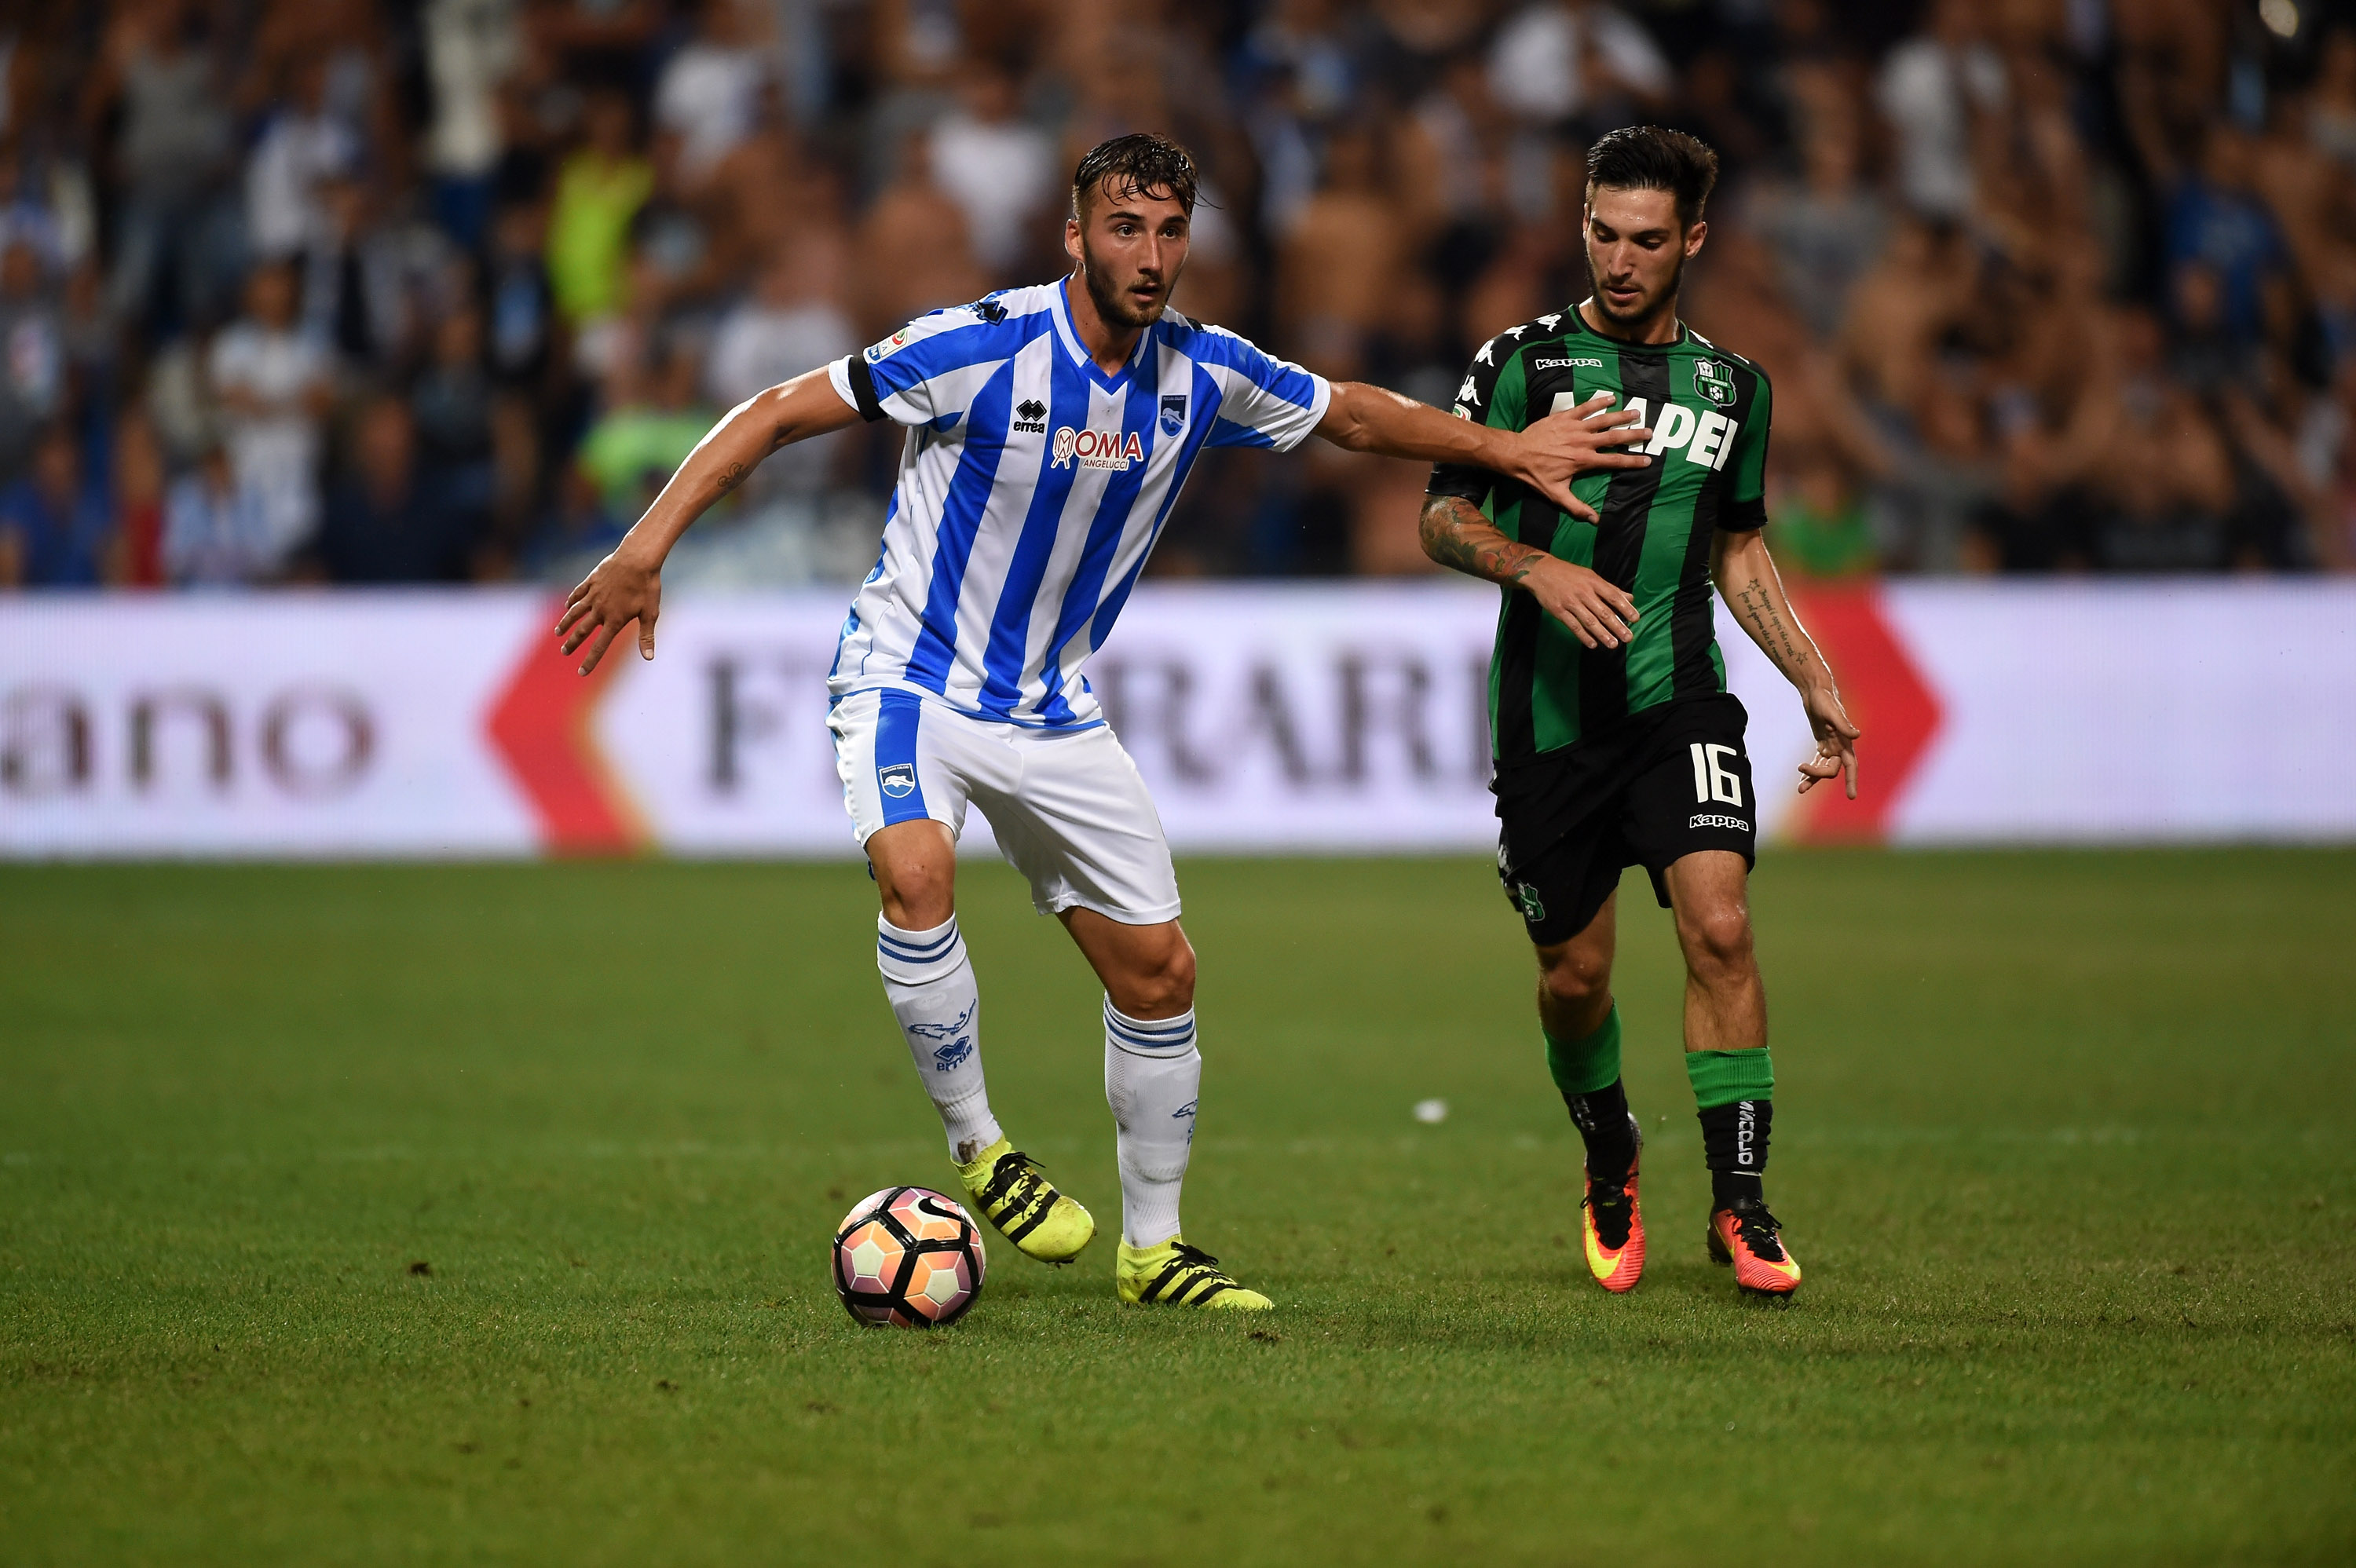 REGGIO NELL'EMILIA, ITALY - AUGUST 28: (L-R) Bryan Cristante of Pescara Calcio competes for the ball with Gaston Duarte Brugman during the Serie A match between US Sassuolo and Pescara Calcio at Mapei Stadium - Citta' del Tricolore on August 28, 2016 in Reggio nell'Emilia, Italy. (Photo by Pier Marco Tacca/Getty Images)